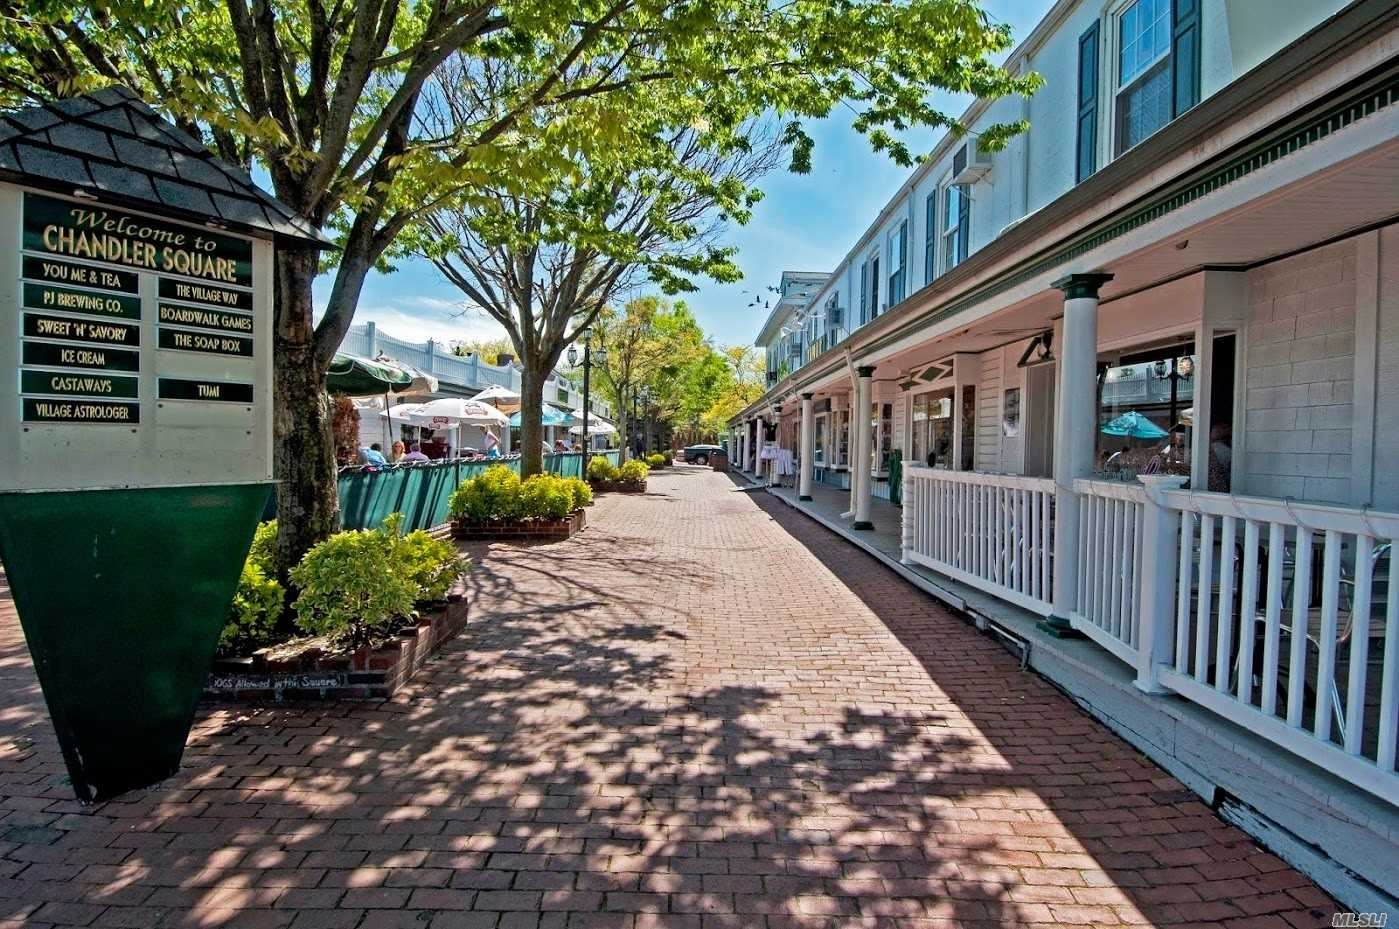 30 Chandler Square #1, Port Jefferson, NY 11777 - MLS#: 3182745